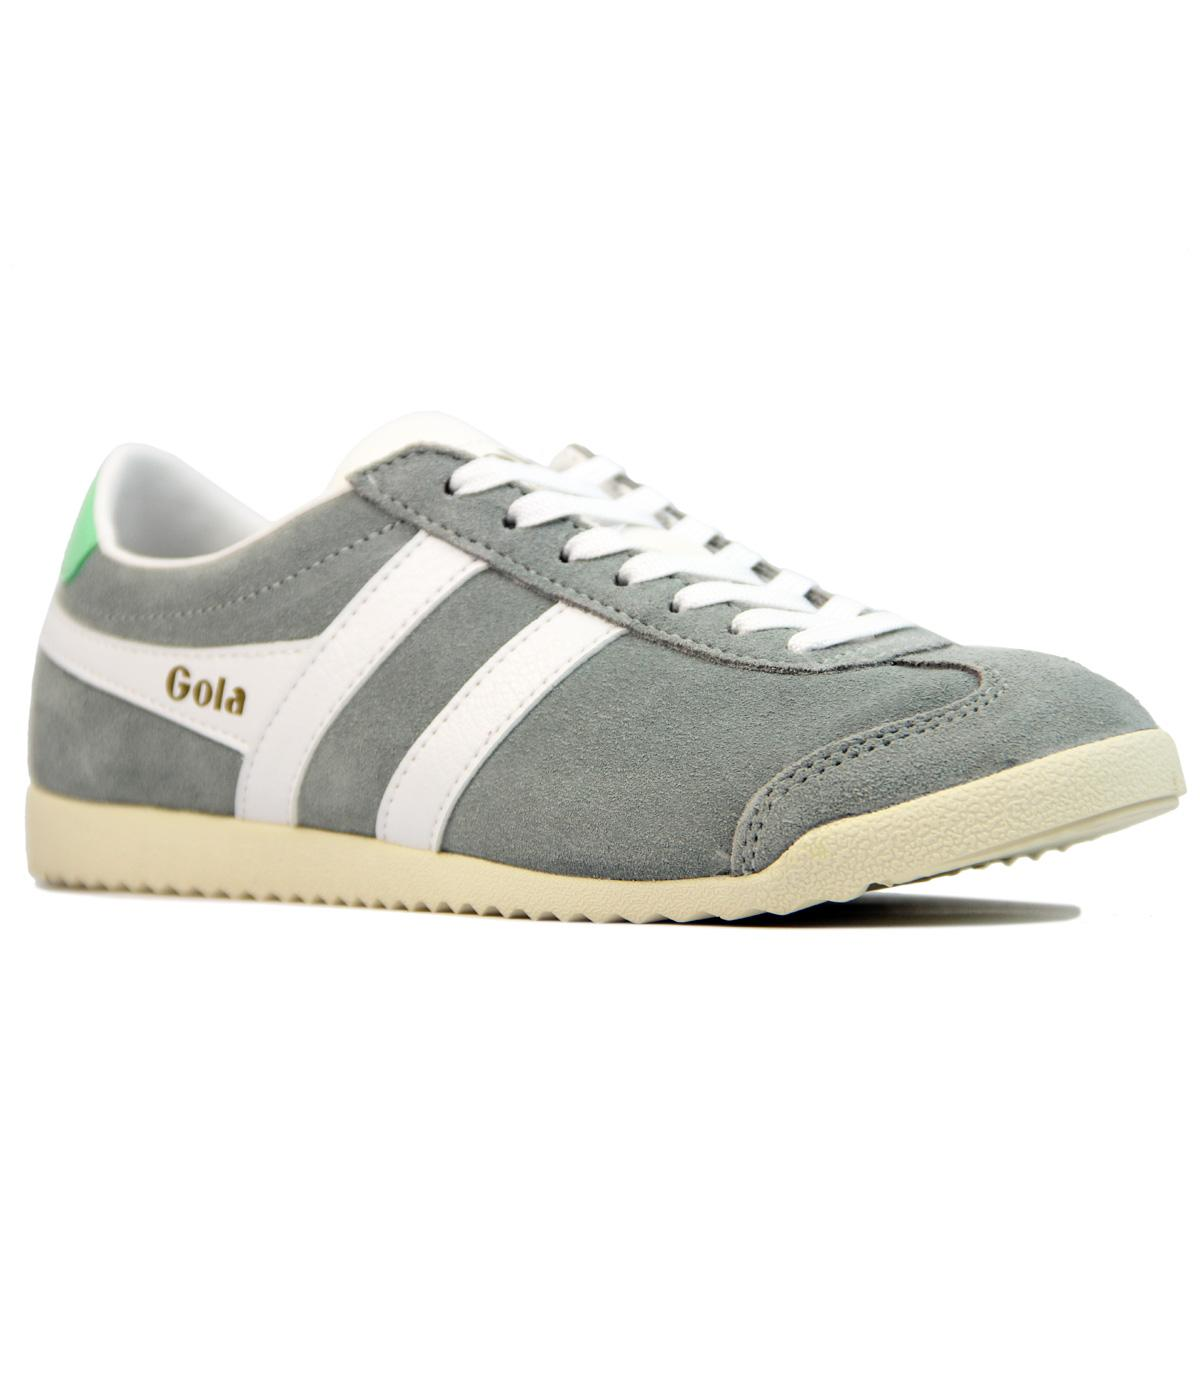 GOLA Bullet Womens Retro Suede Trainers GREY